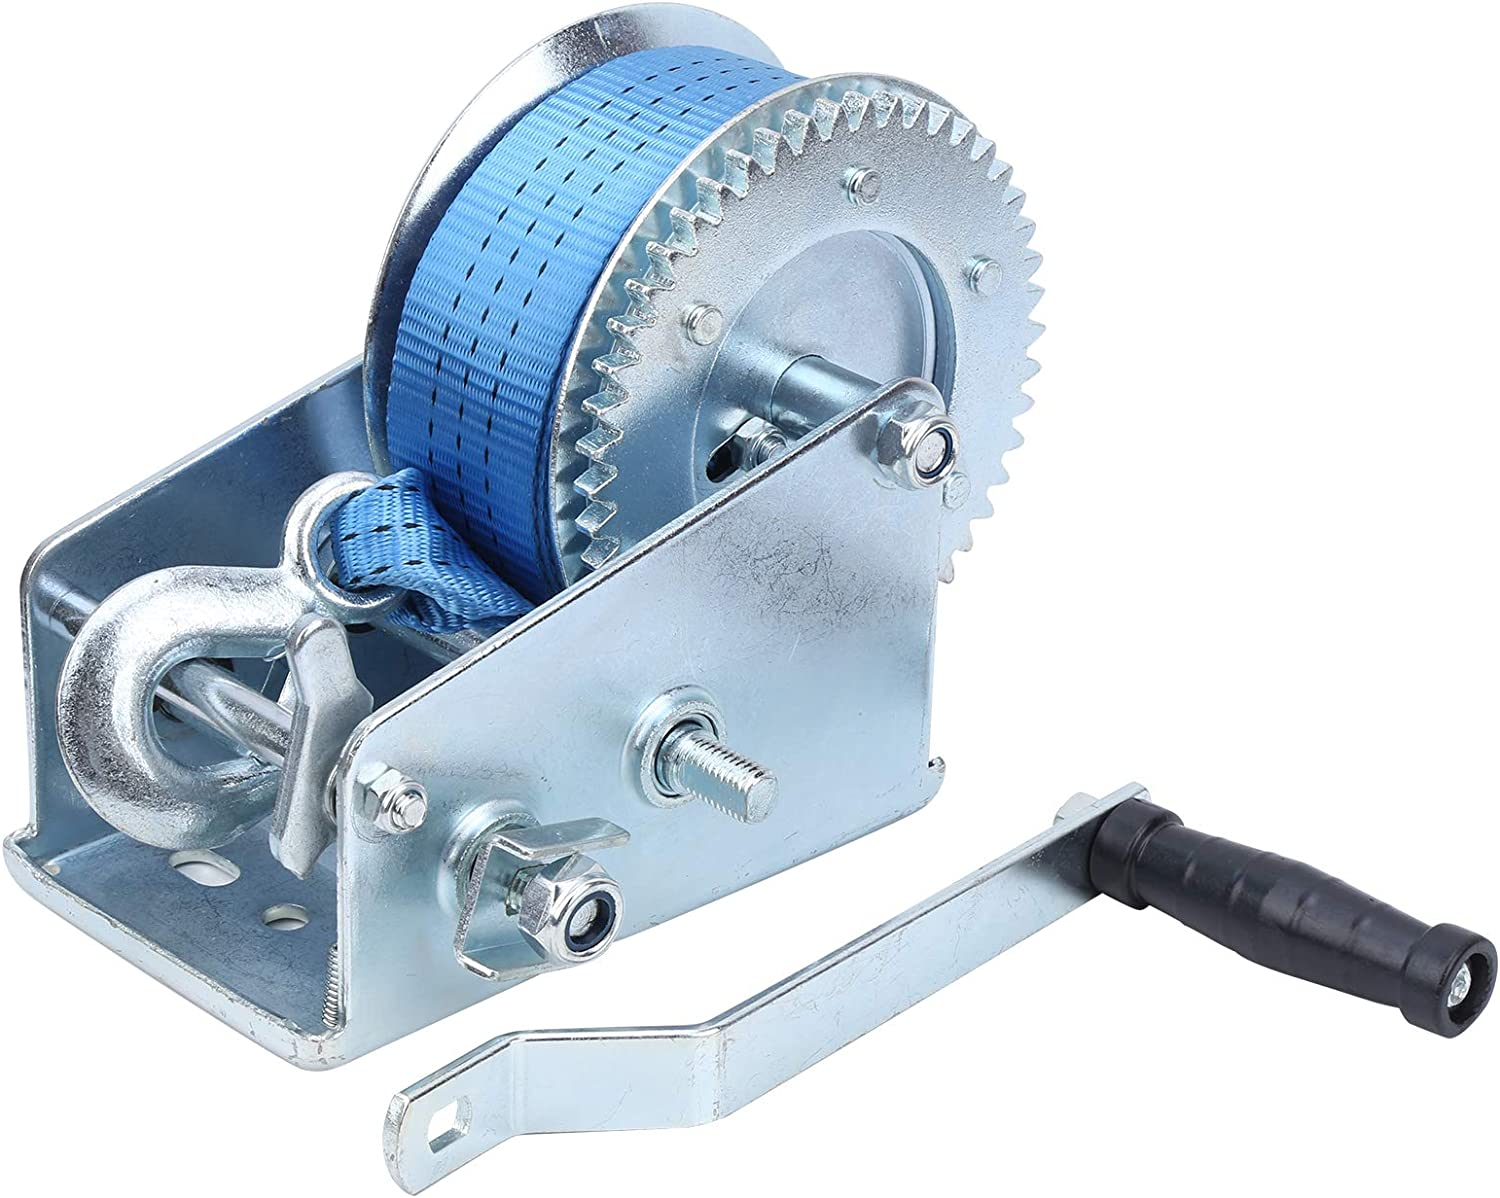 Hand Winch Trailer Heavy Duty specialty shop ATV for Direct sale of manufacturer Boat Towing